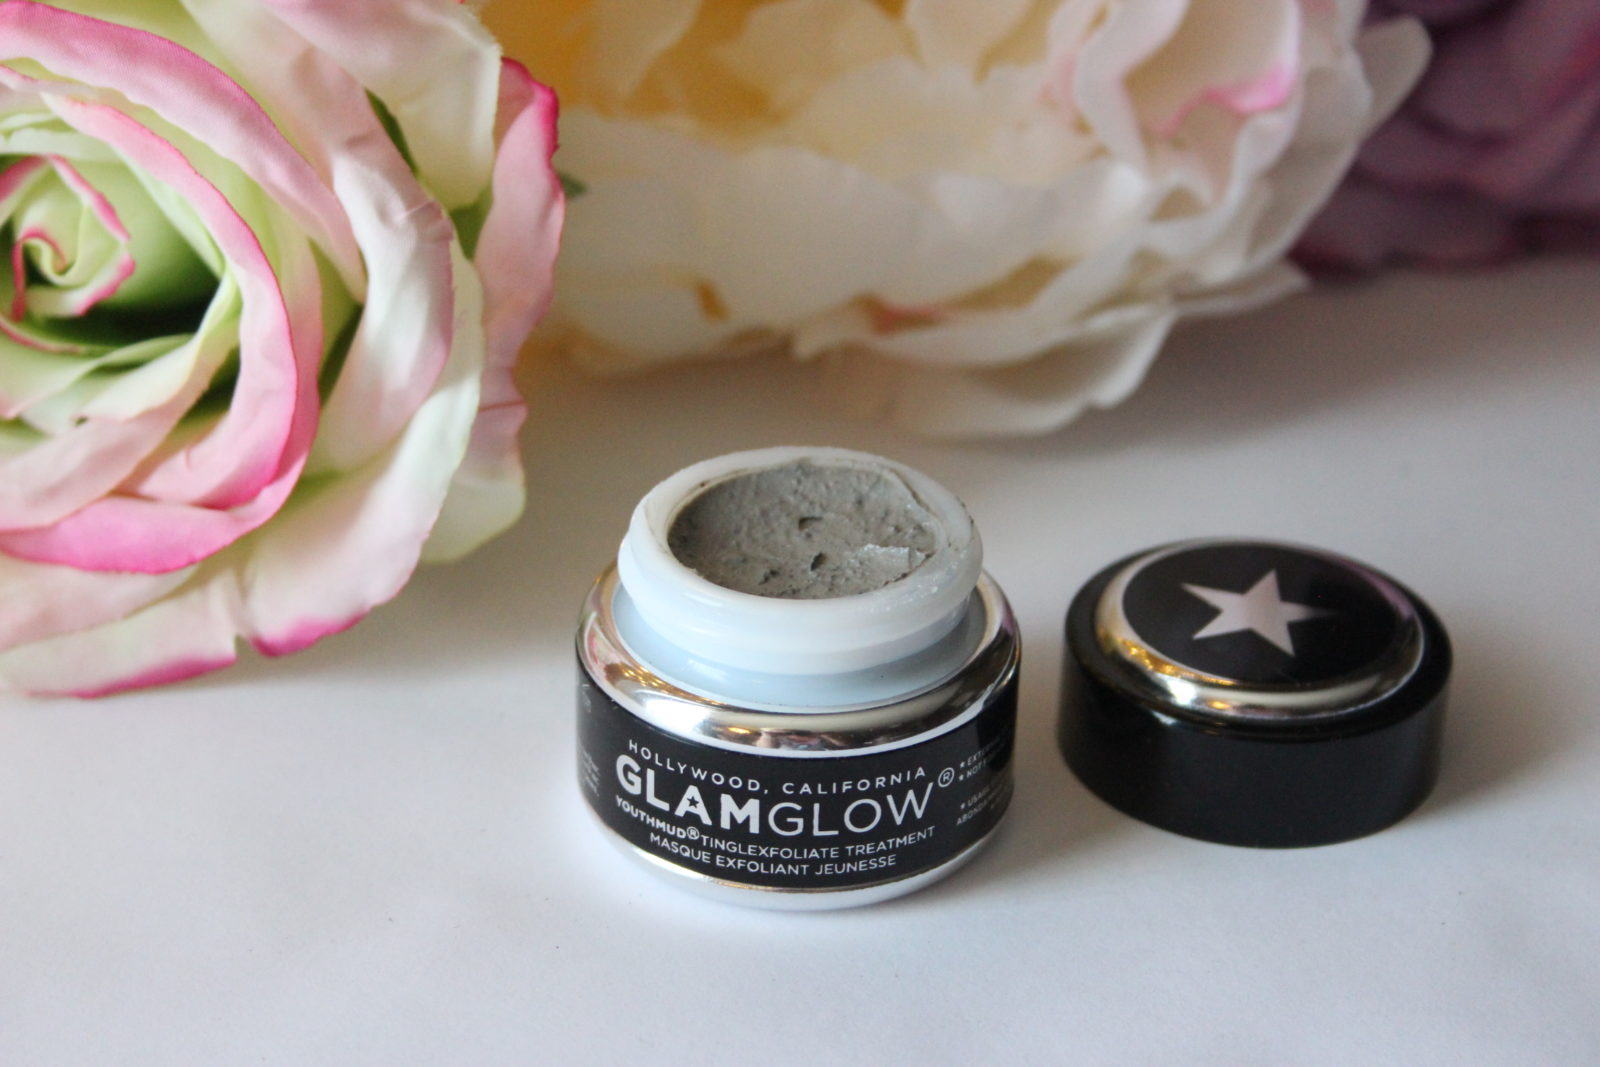 Glamglow Tinglexfoliate Mask Review